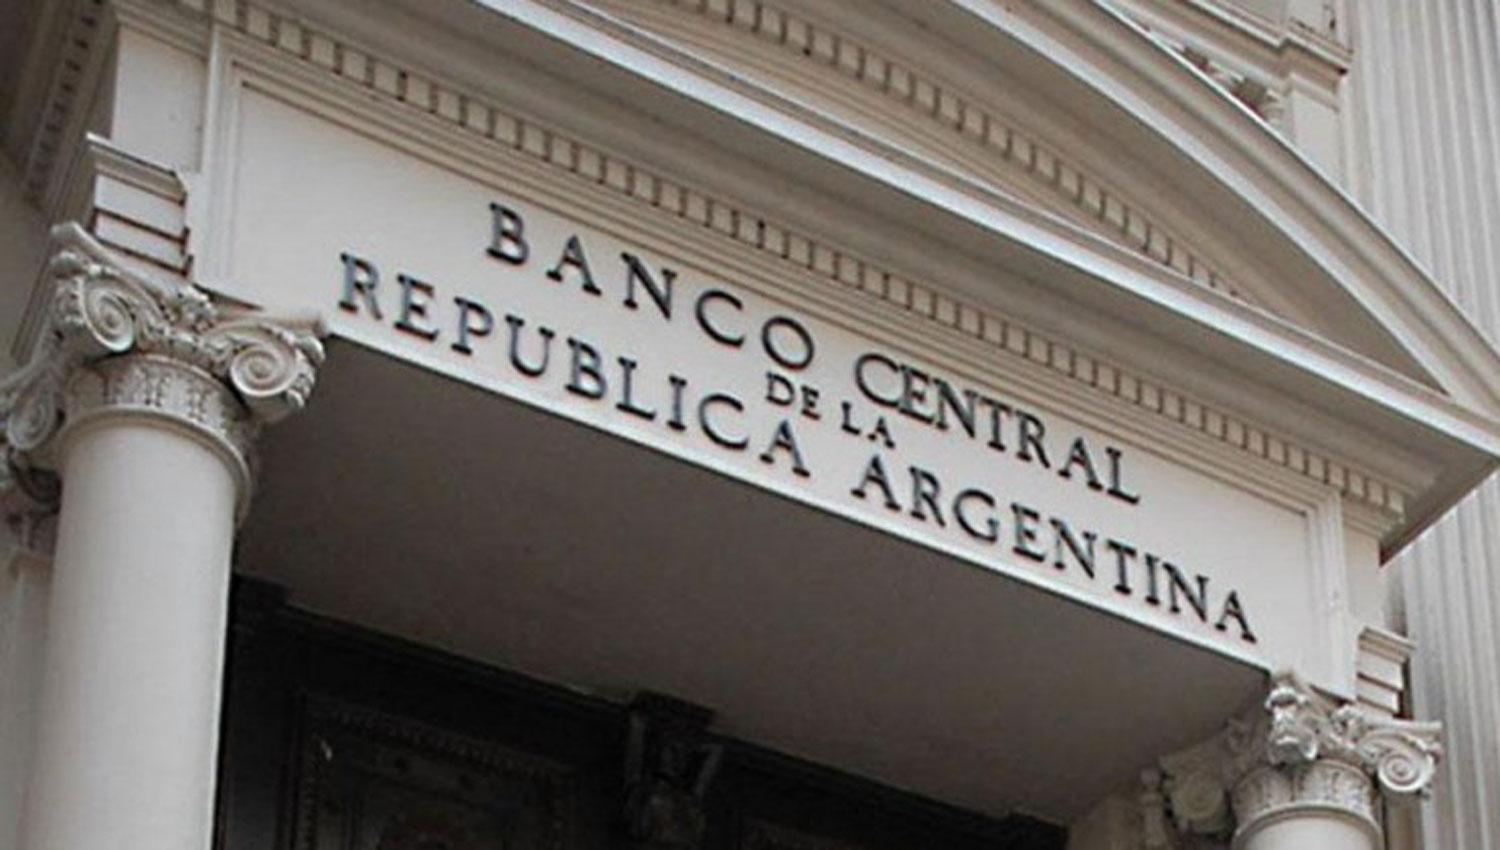 Banco Central de Chile coloca bonos de Tesorería por US$988M